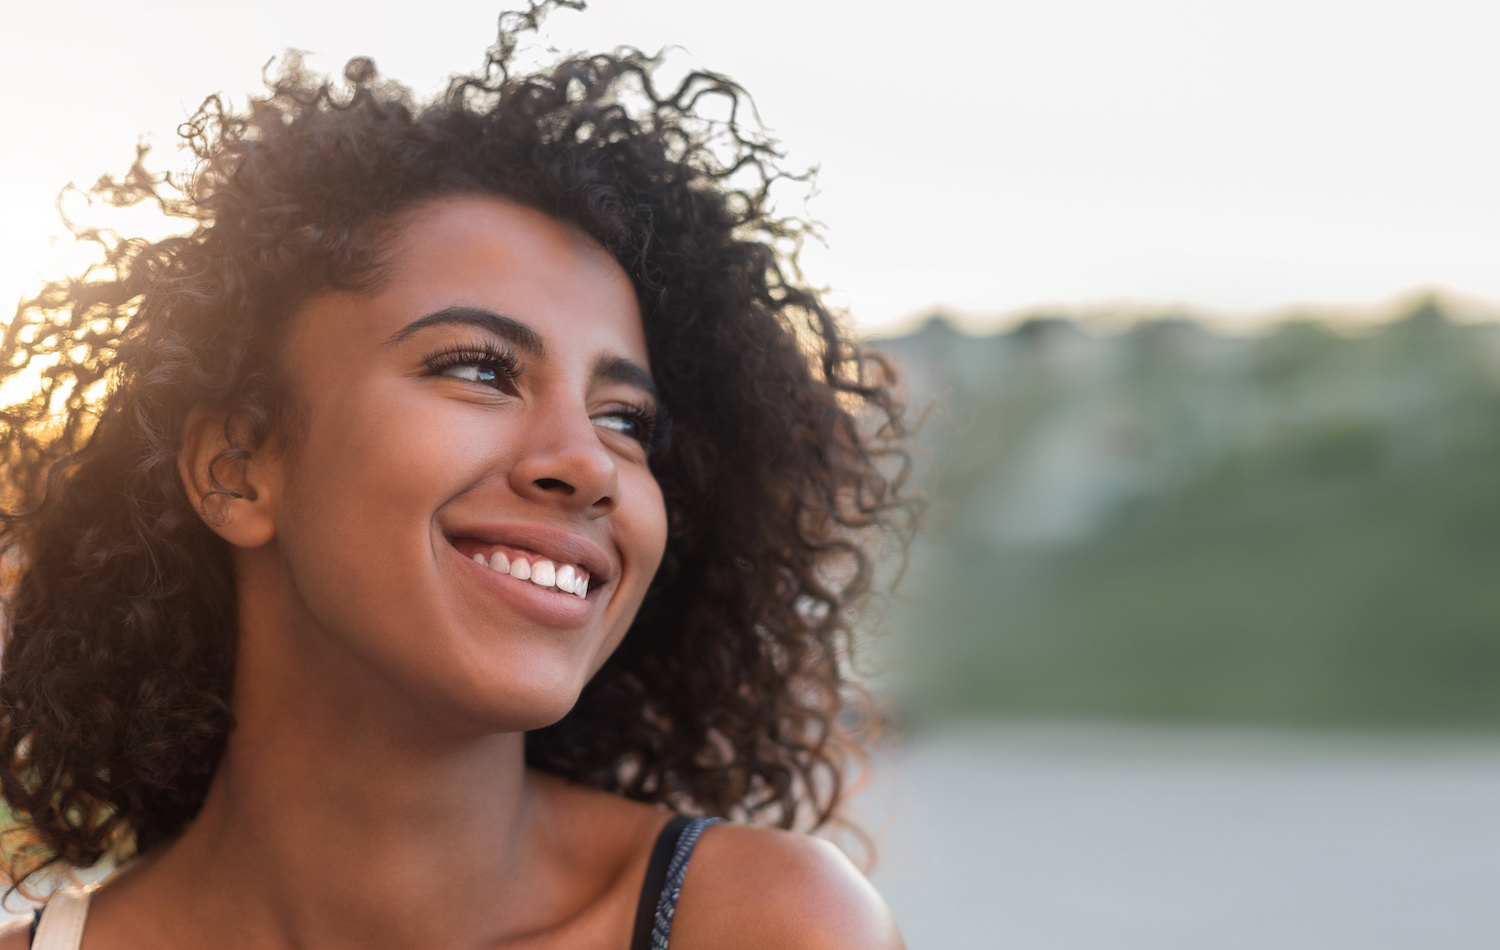 woman smiling in front of fence